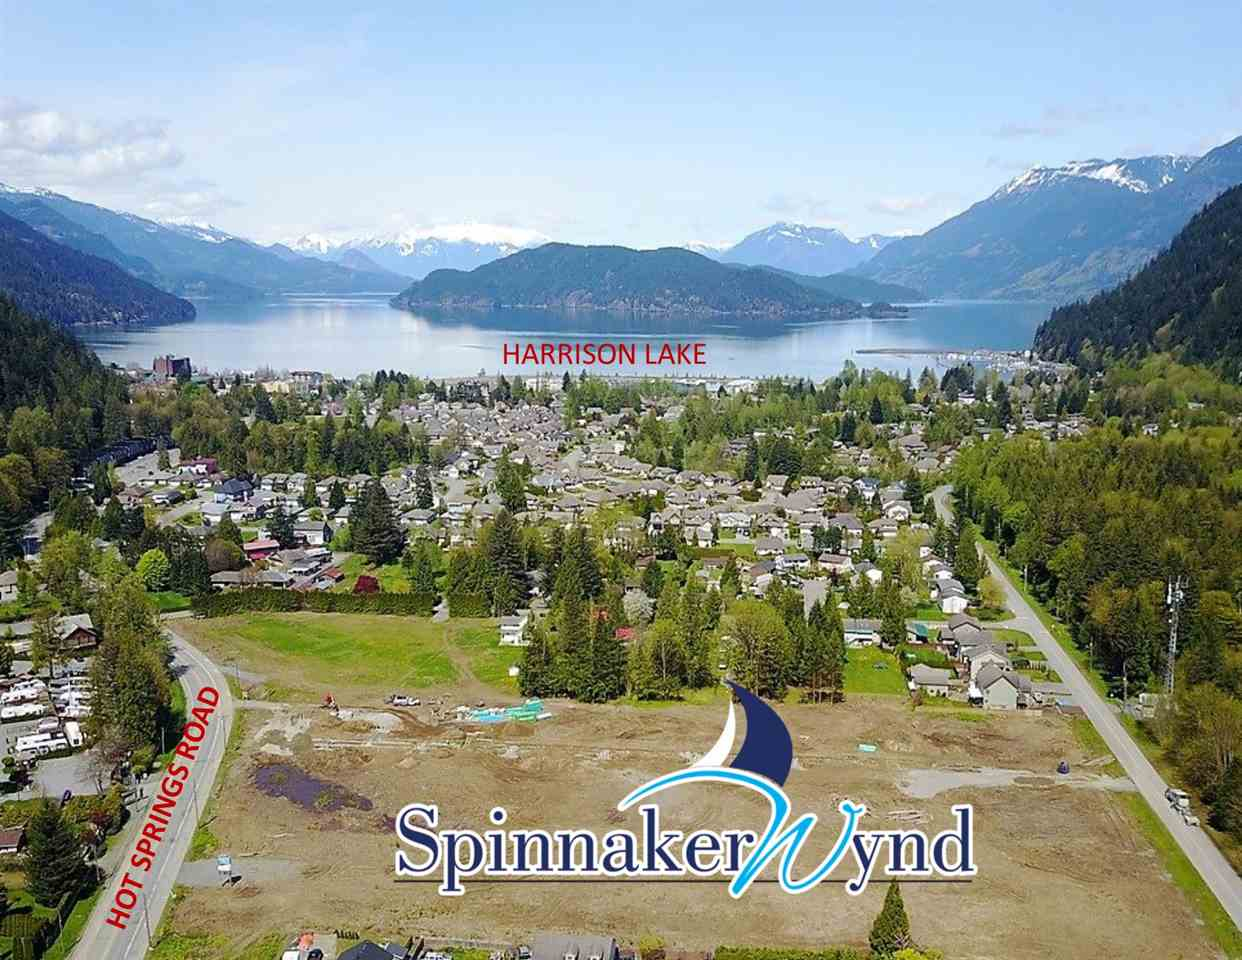 Harrison Hot Springs new development! Spinnaker Wynd; first phase of 35 single family lots. Fully services, great location walking distance to the lake. Once in a lifetime opportunity to own in a new development close to the lake! Comprehensive development will include homes, attached homes & townhomes in future phase. Info package available. Don't delay!